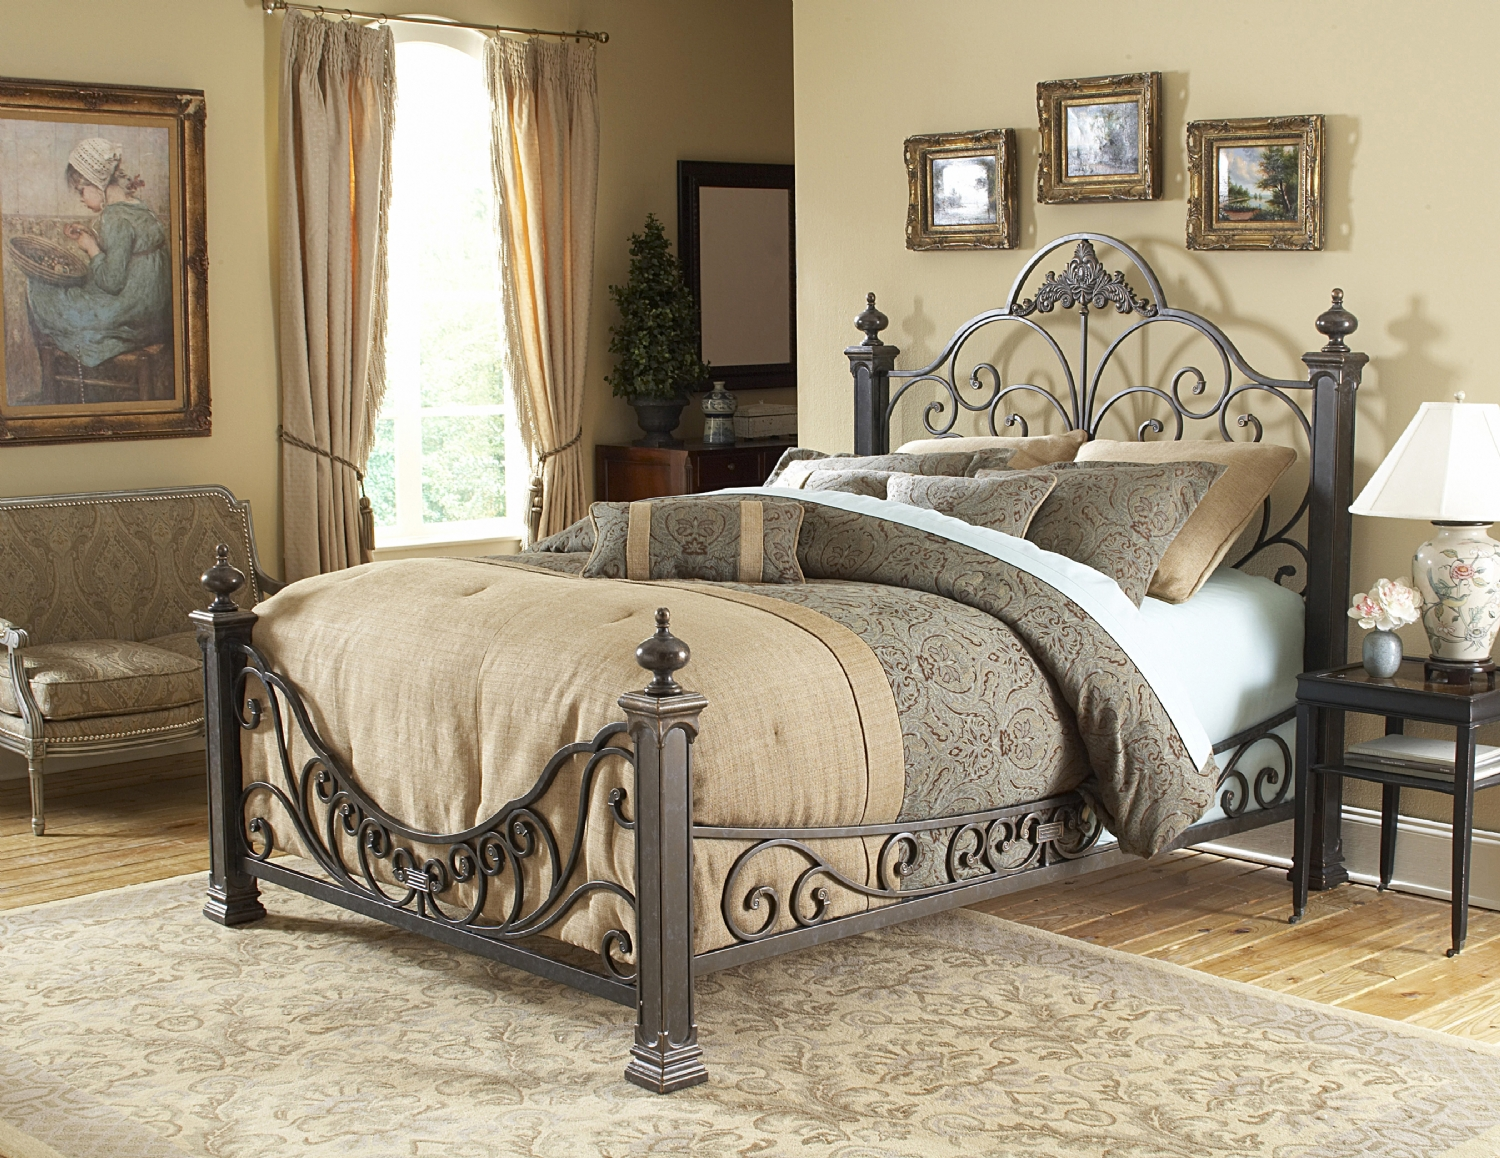 Baroque. Bedrooms West  Metal beds